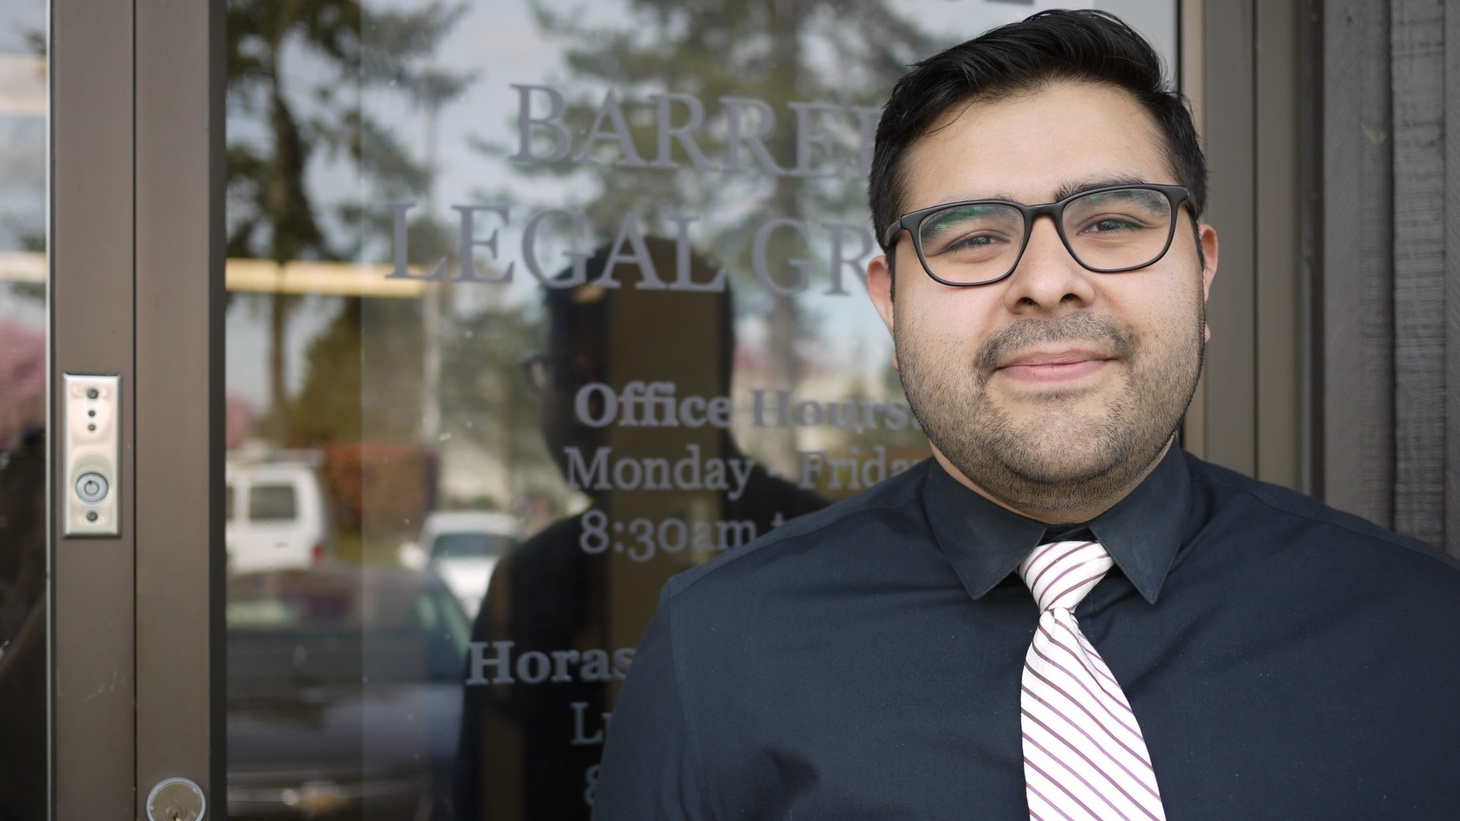 Luis Cortes, the undocumented attorney arguing in favor of DACA before the Supreme Court.